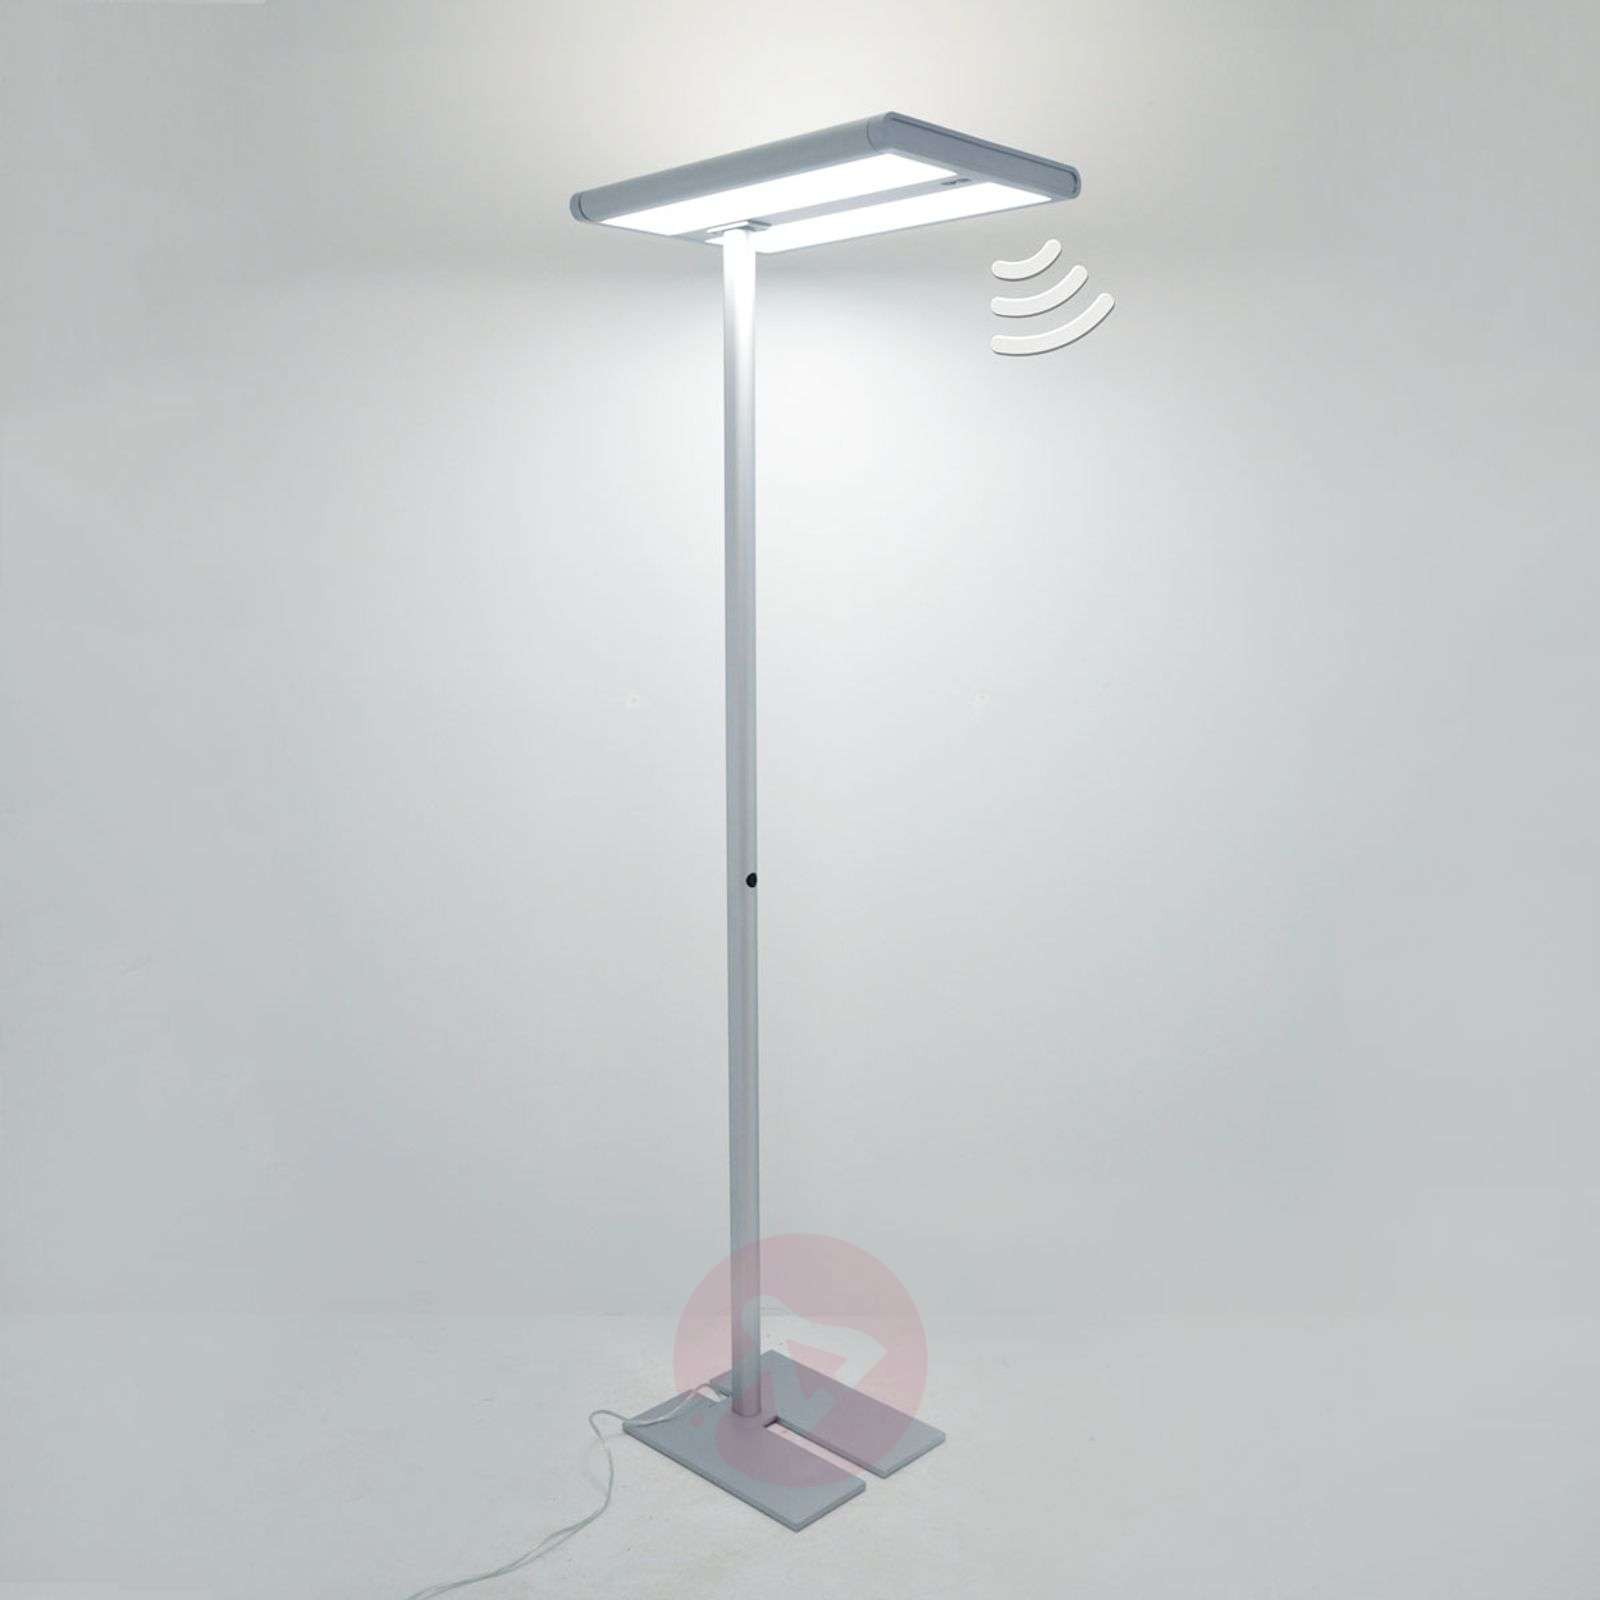 Quirin Led Office Floor Lamp With Sensor 9966001 01